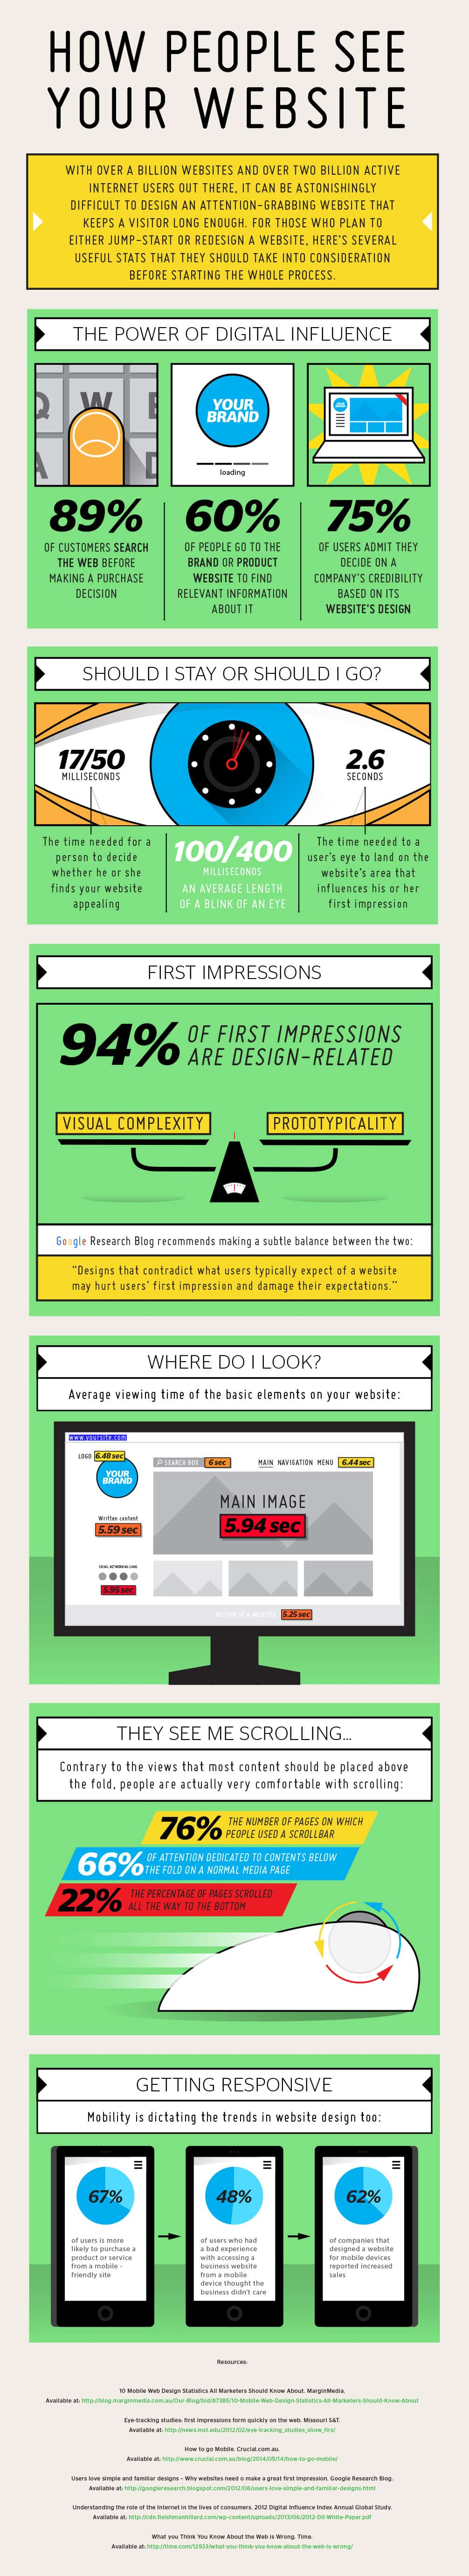 infographic, web design, prototypicality, visual complexity, marketing